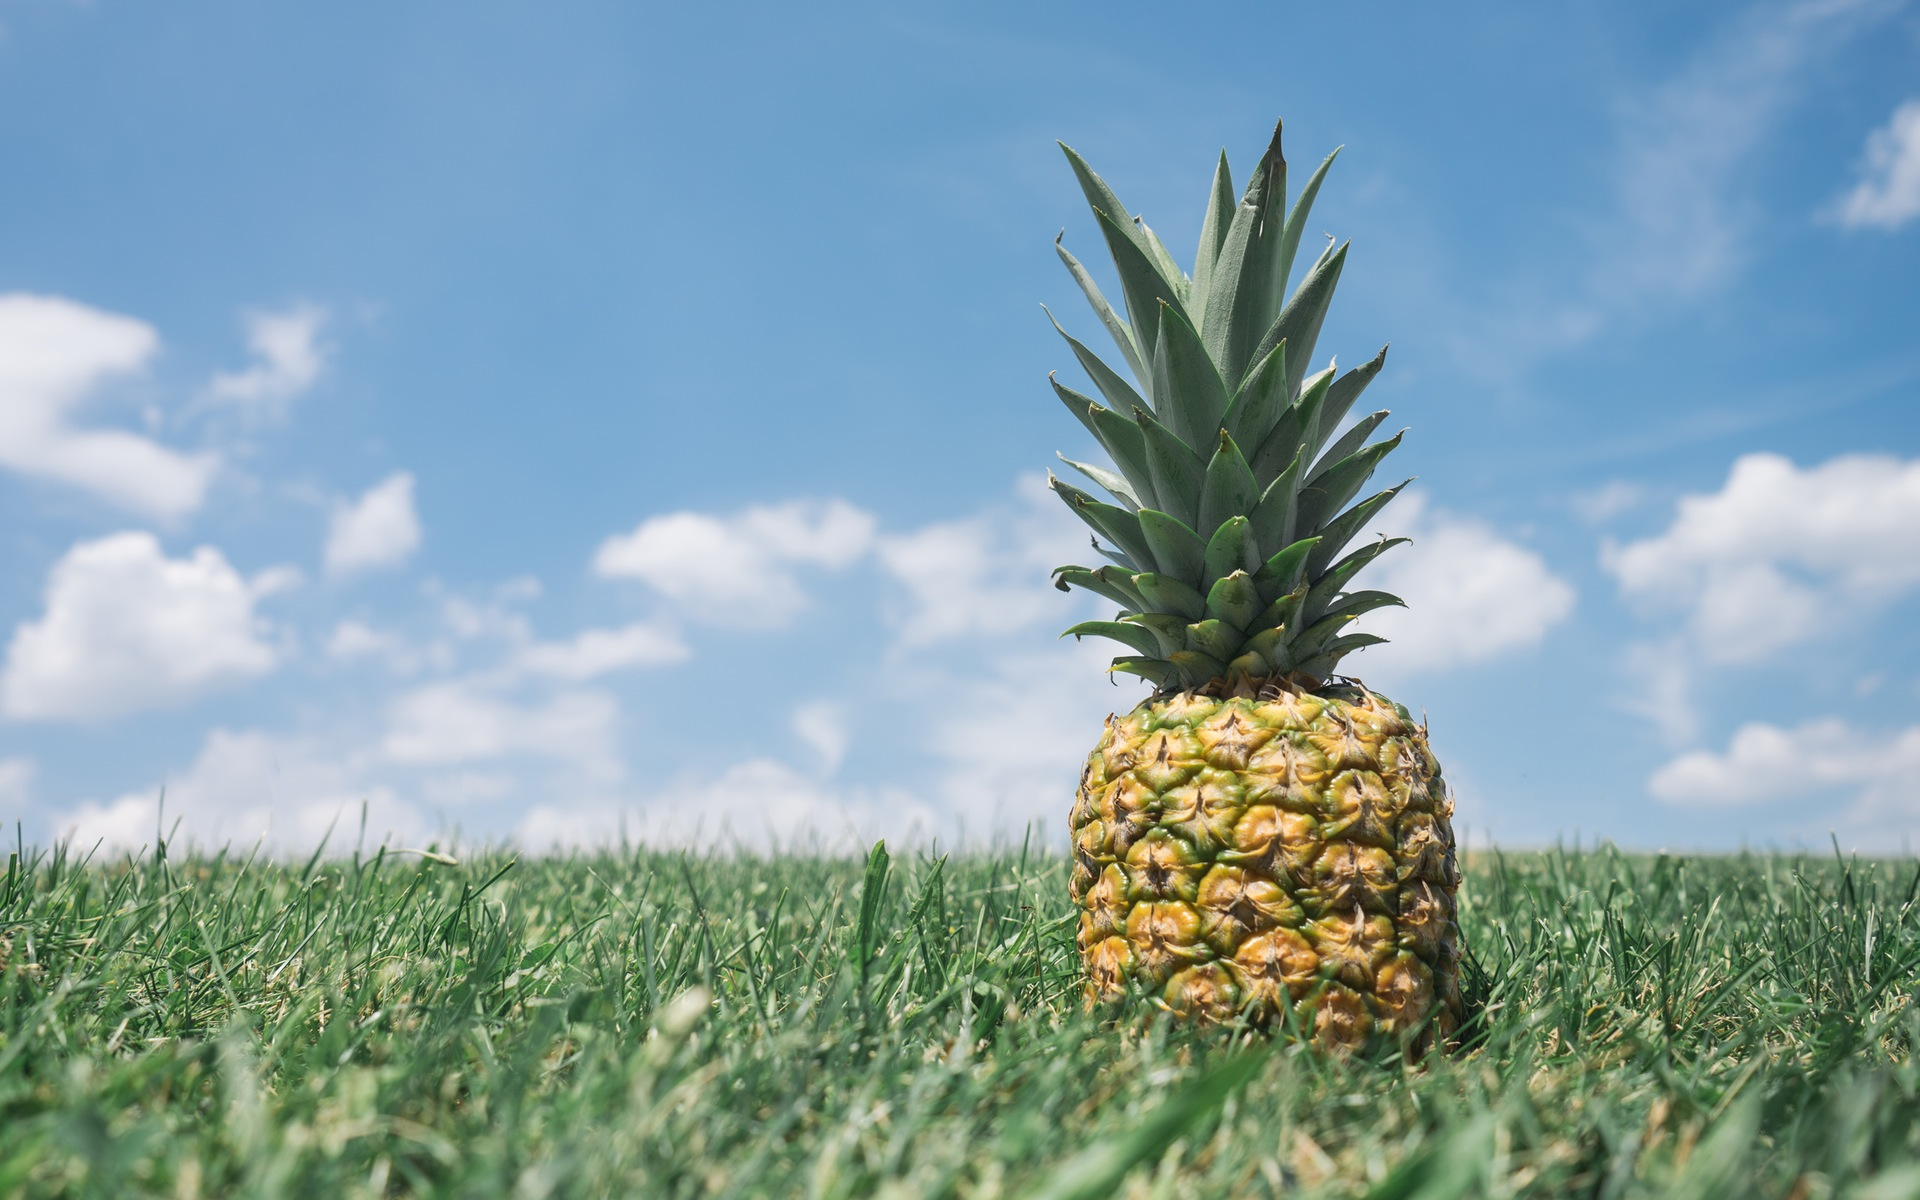 pineapple in grass wallpaper background